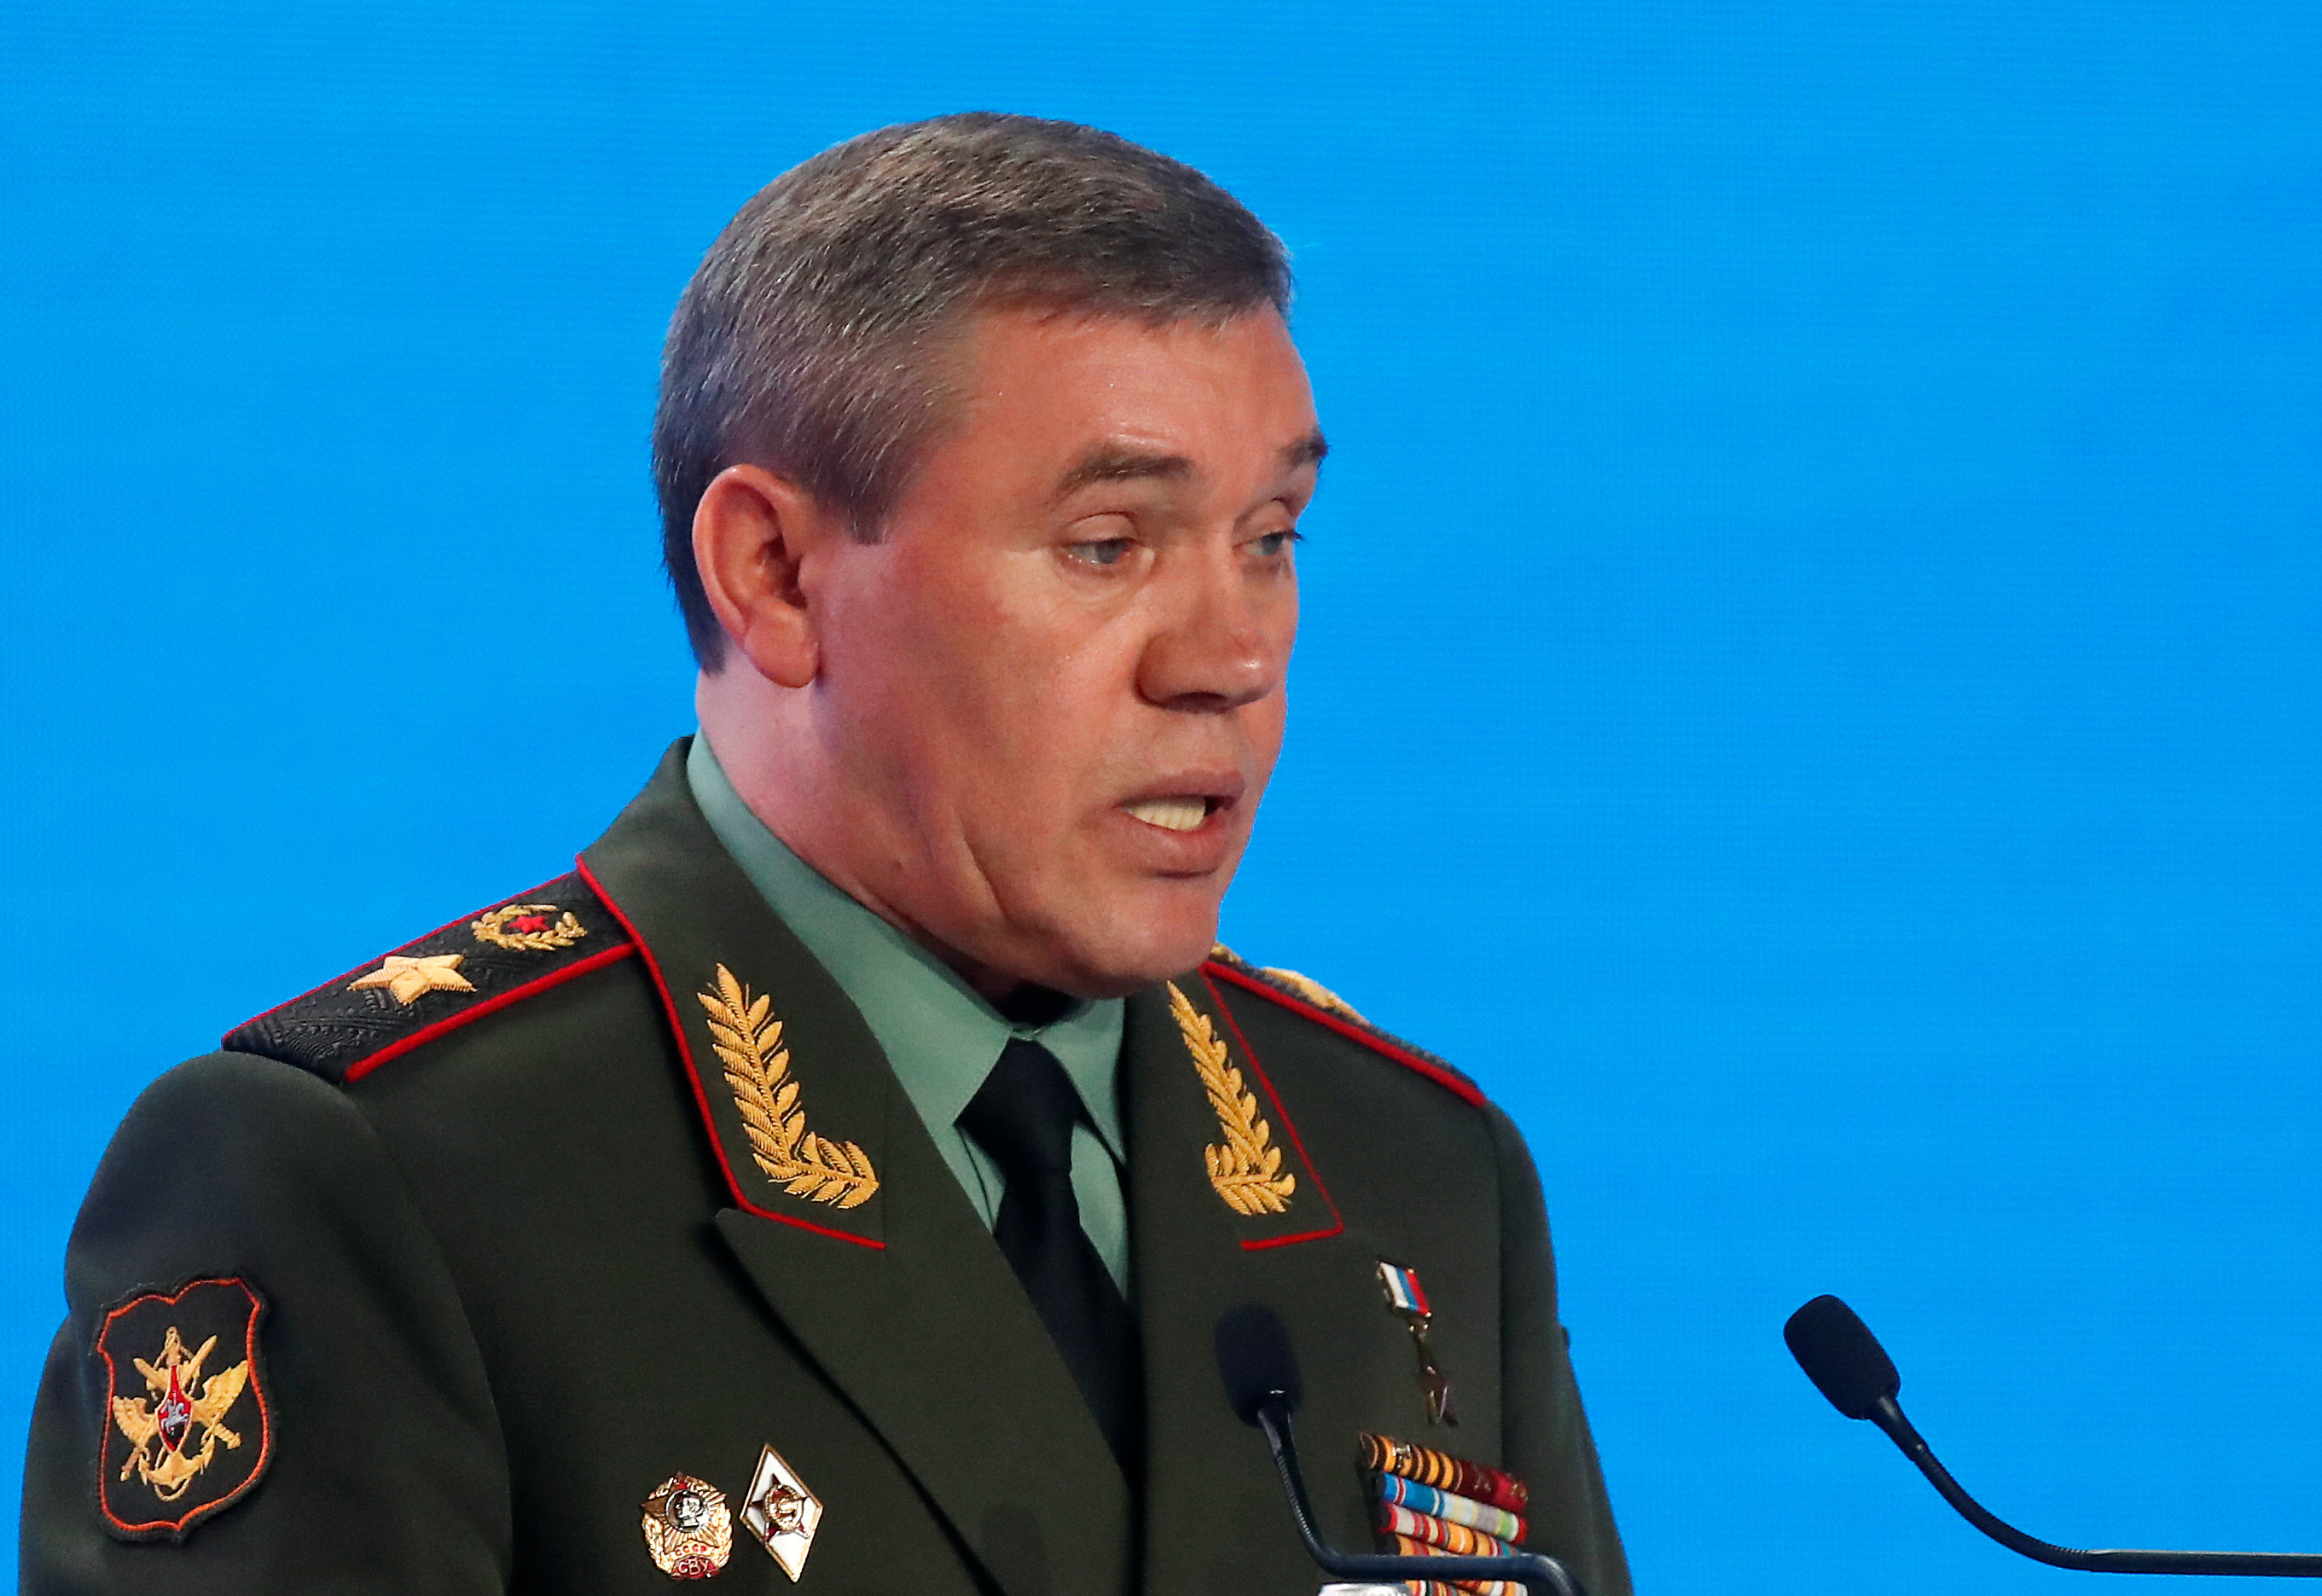 Chief of the General Staff of Russian Armed Forces Valery Gerasimov delivers a speech during the annual Moscow Conference on International Security (MCIS) in Moscow, Russia April 24, 2019. REUTERS/Maxim Shemetov